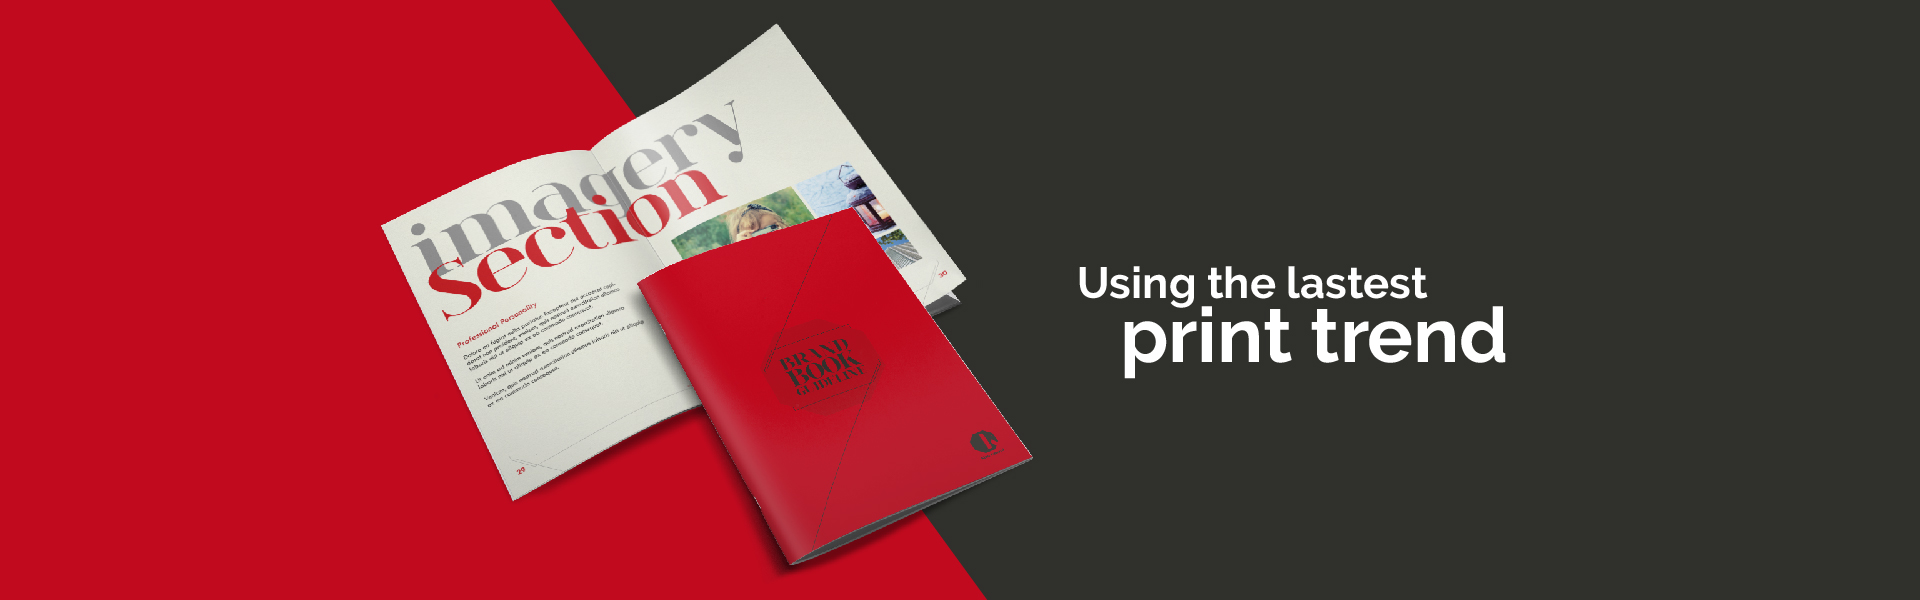 Publication Printing | Best Deals - Graphics and Printing